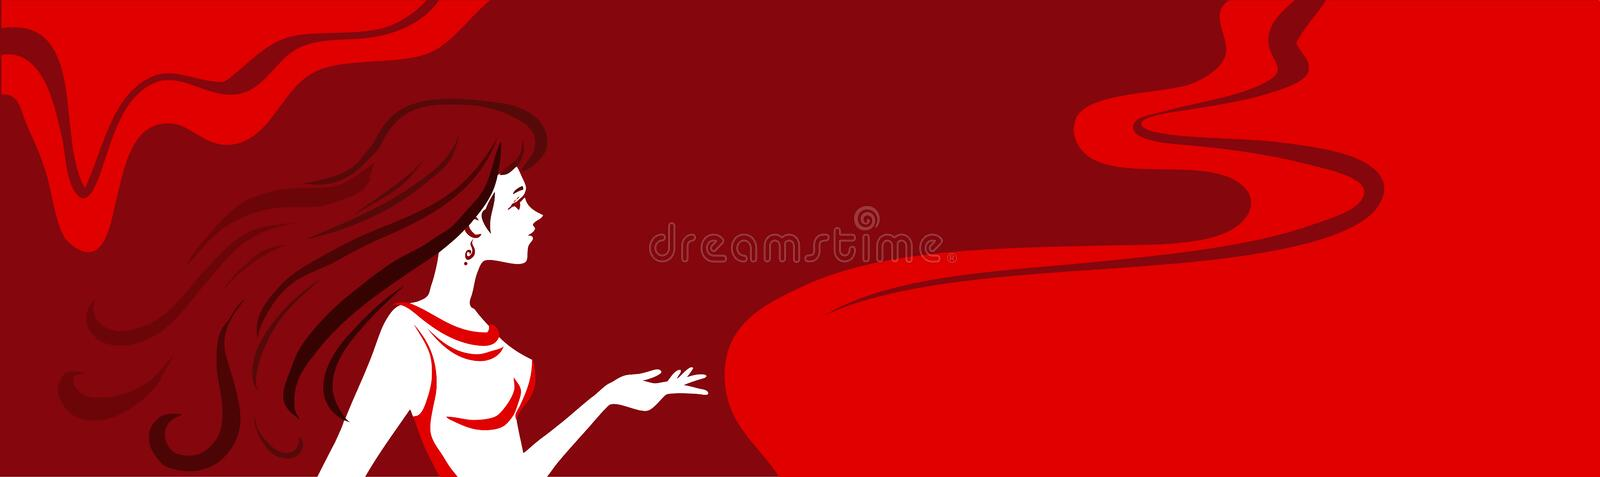 Download Horizontal Vector Background With Woman Stock Vector - Image: 37487905